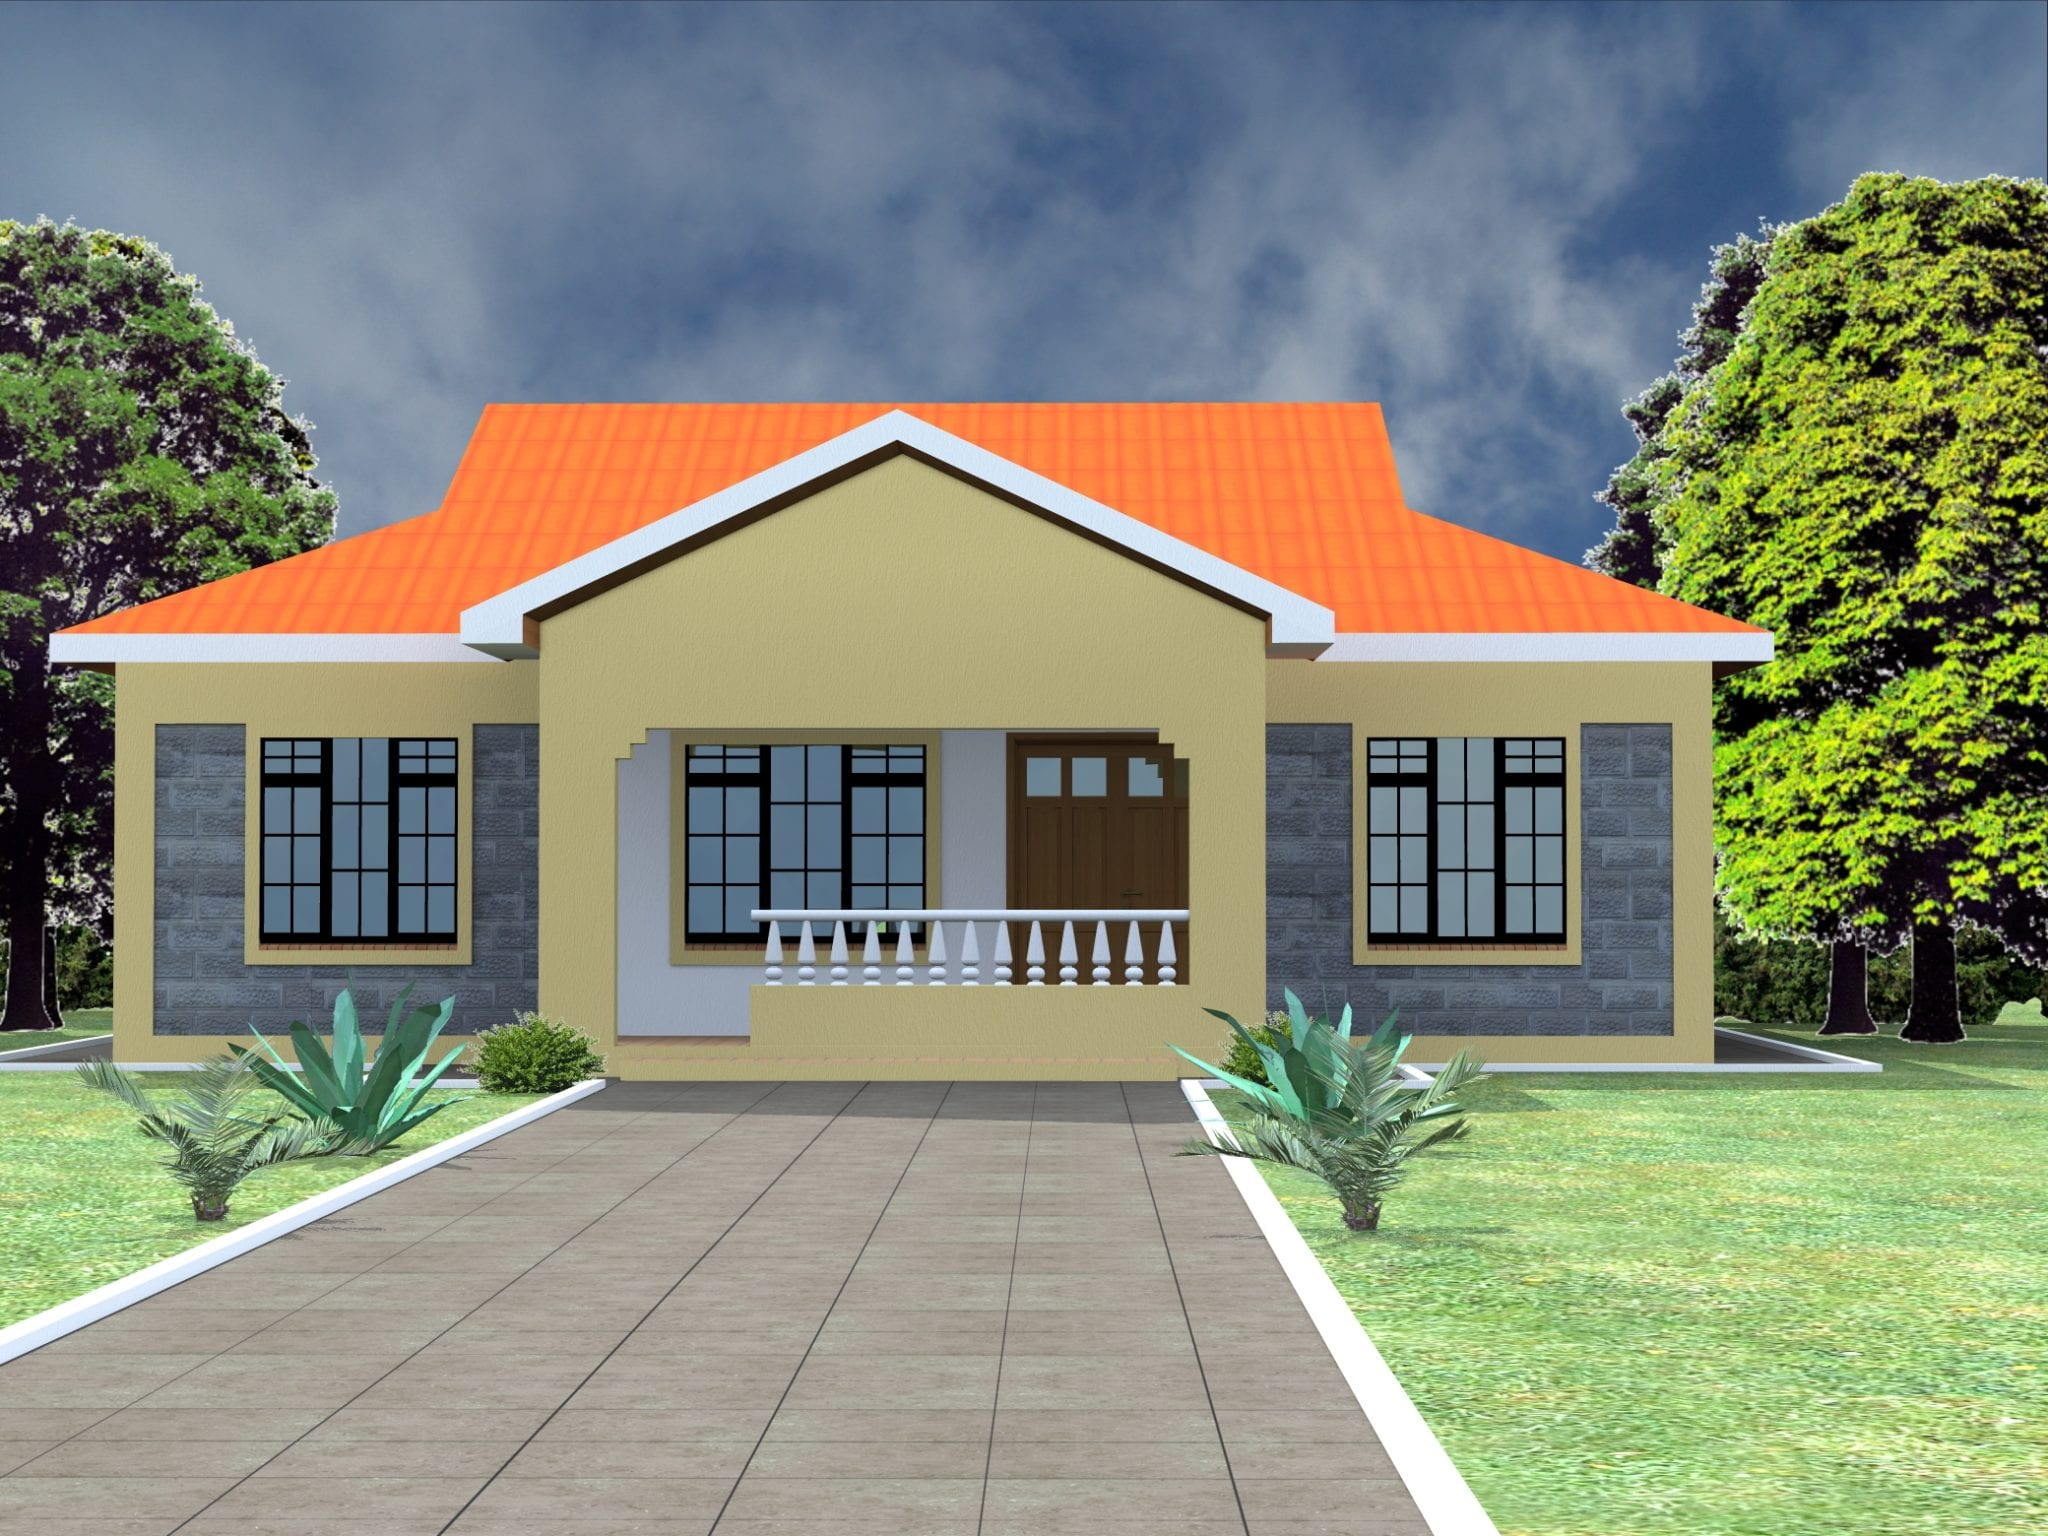 Low Budget Modern 3 Bedroom House Design Hpd Consult with 15 Genius Ideas How to Upgrade 3 Bedroom Modern House Design